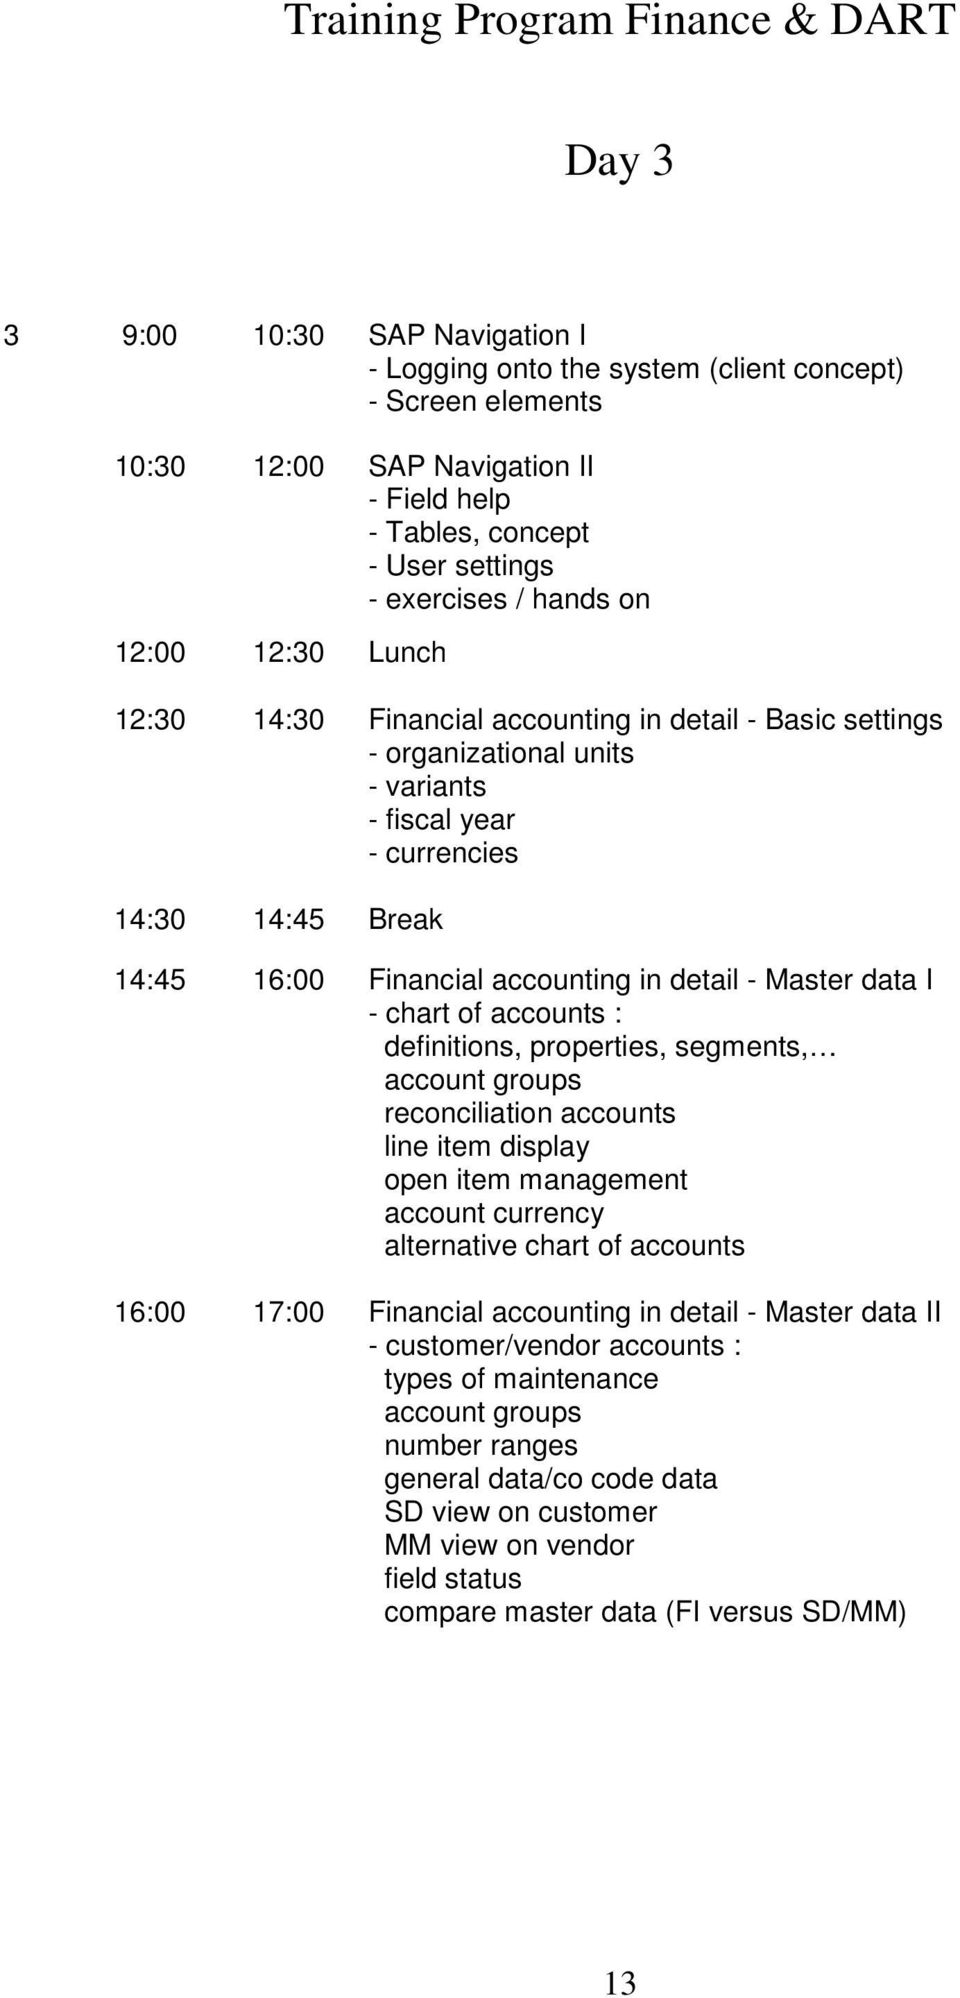 Master data I - chart of accounts : definitions, properties, segments, account groups reconciliation accounts line item display open item management account currency alternative chart of accounts